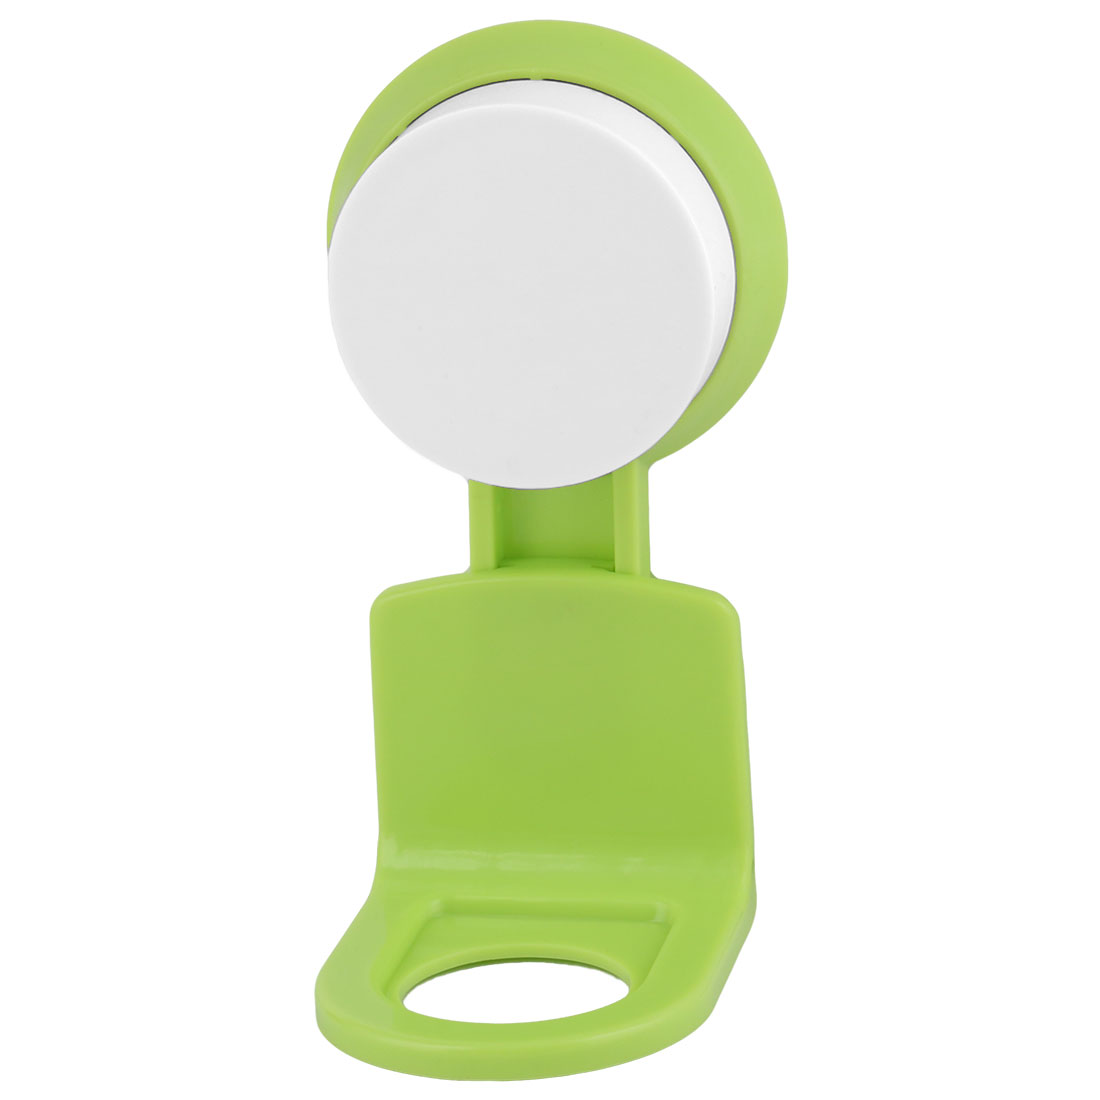 Bathroom Plastic Wall Mounted Suction Cup Body Wash Shower Gel Holder Rack Green - image 3 of 3